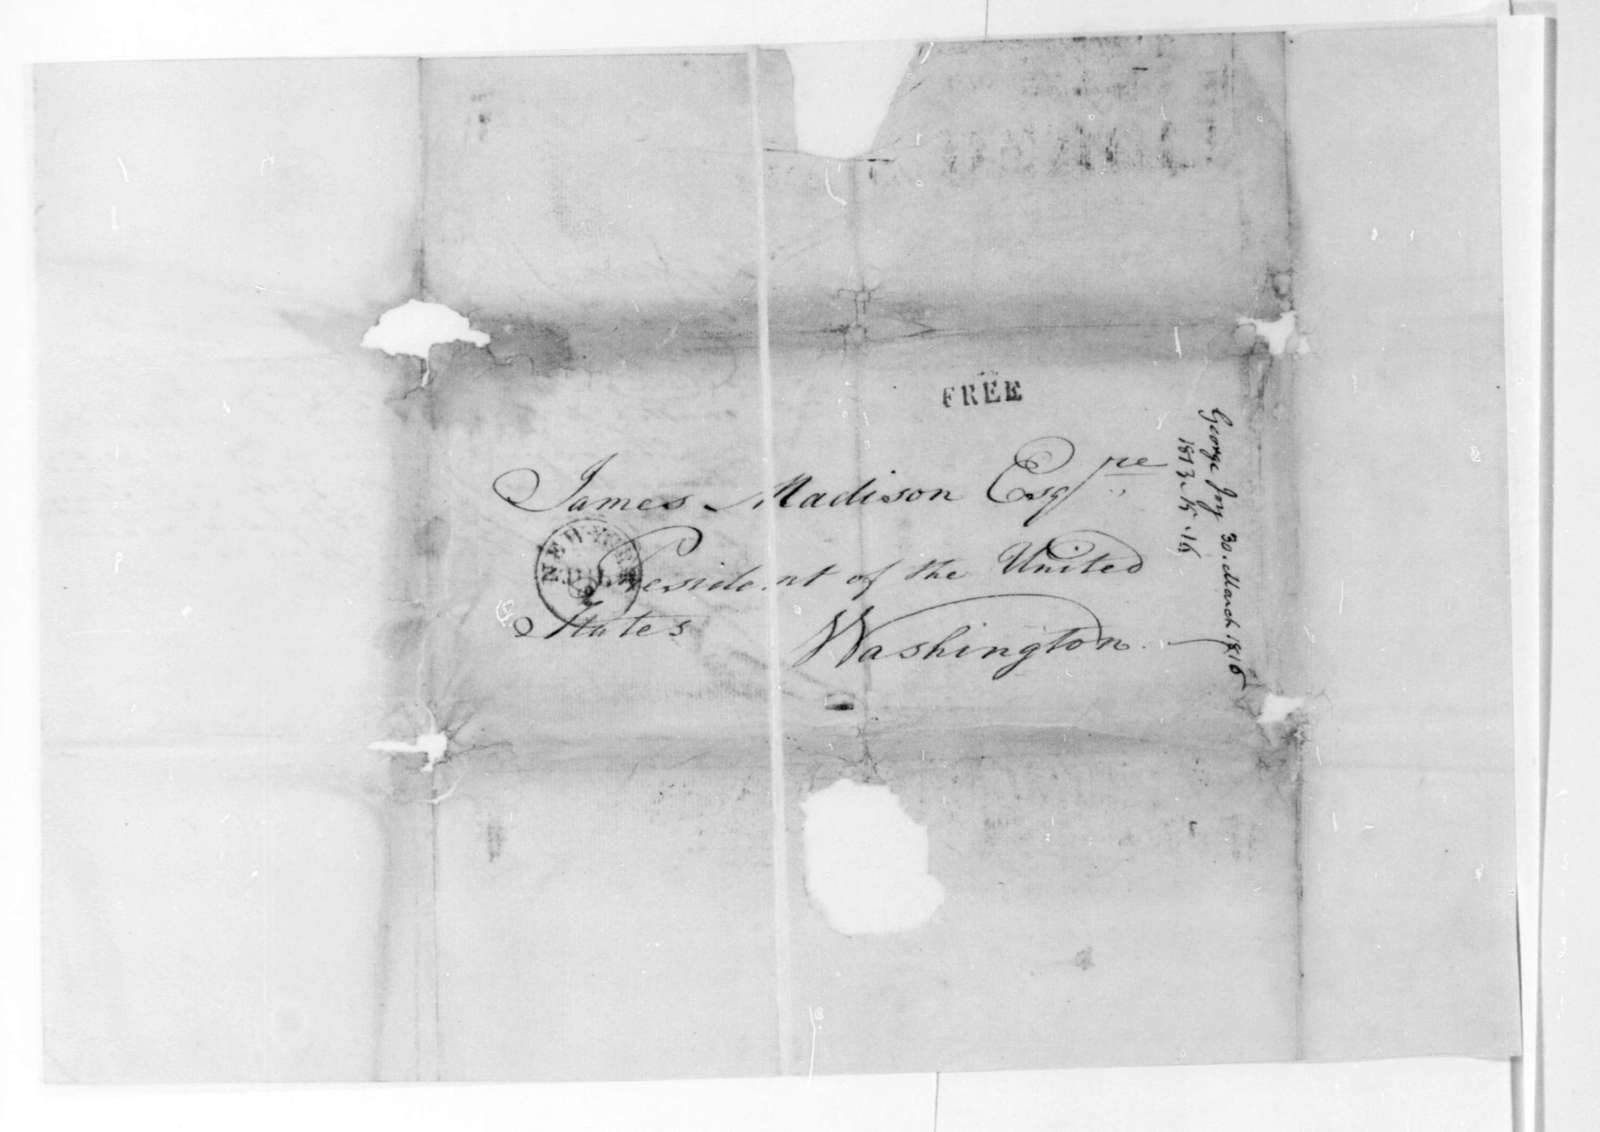 George Joy to James Madison, March 30, 1816.